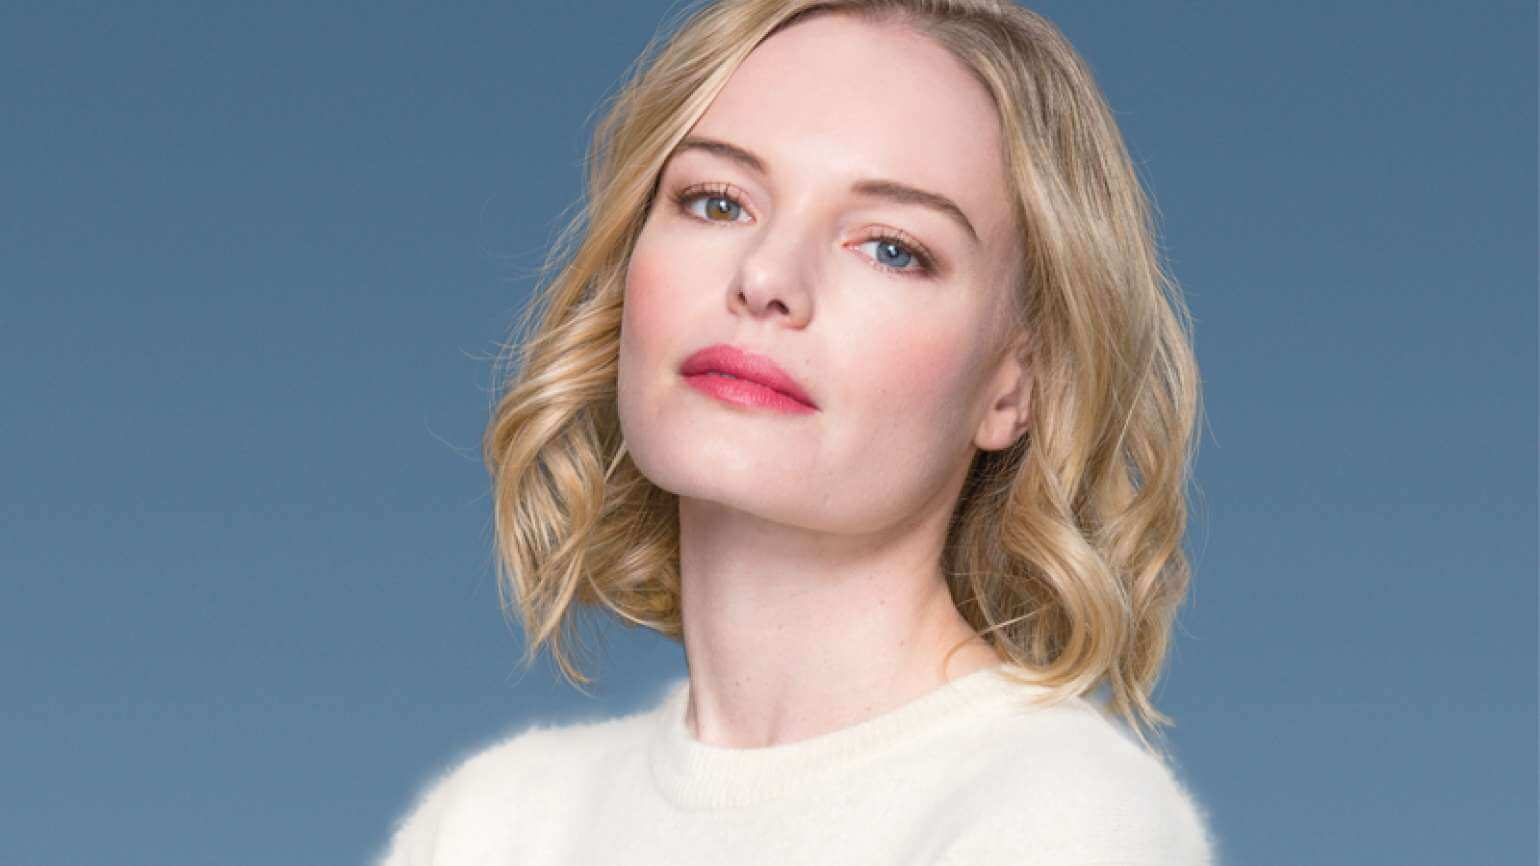 Kate Bosworth eyes, husband, age, net worth, height, wedding, haircut, picture, biography, birthday, awards, details, education, imdb, instagram, twitter, wiki, facebook, website